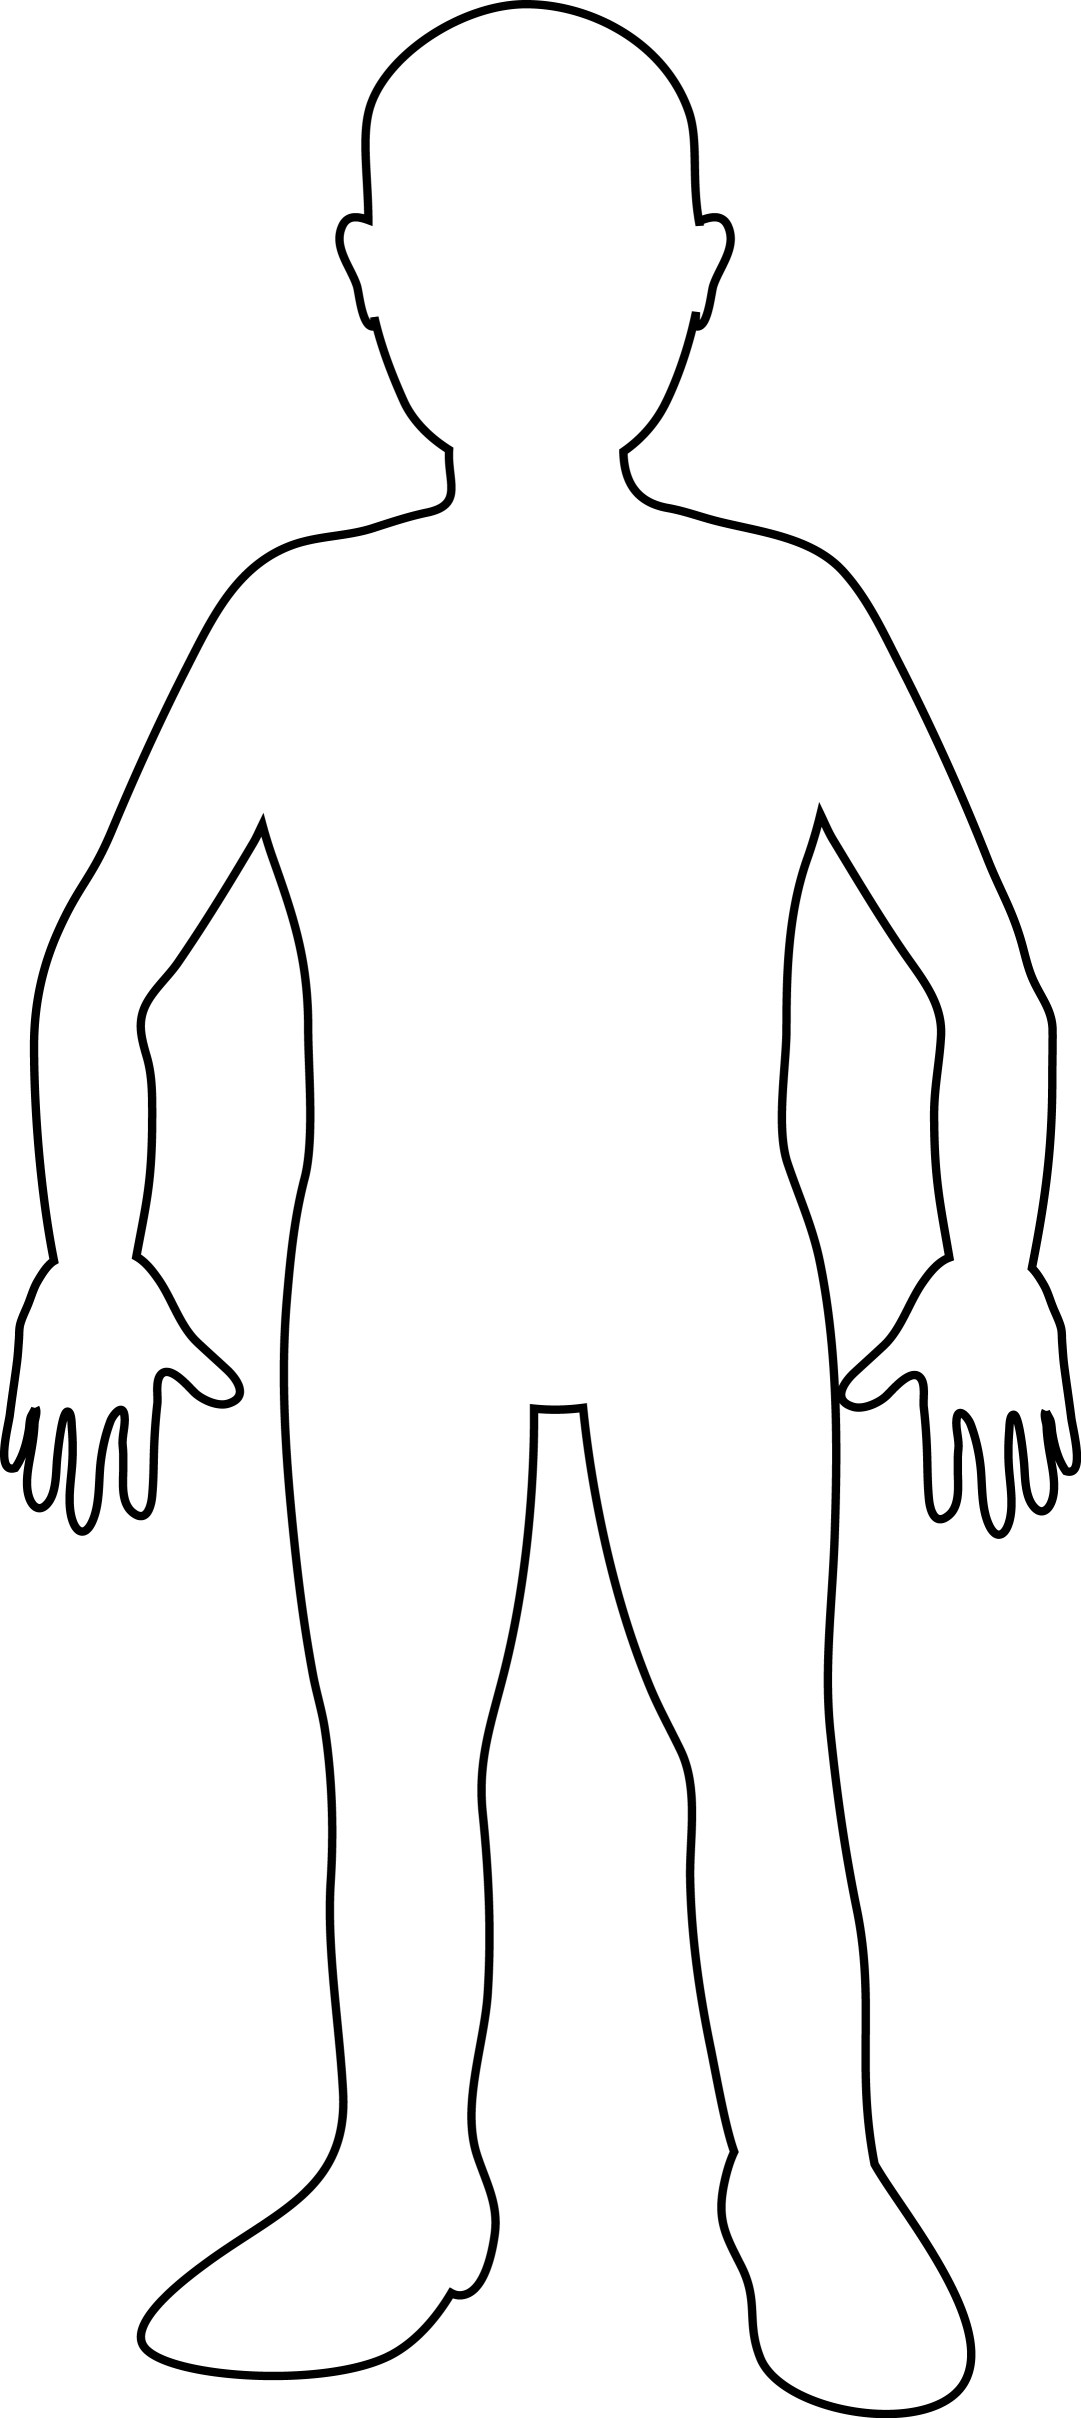 Free coloring pages of blank body outline for Body outline coloring page